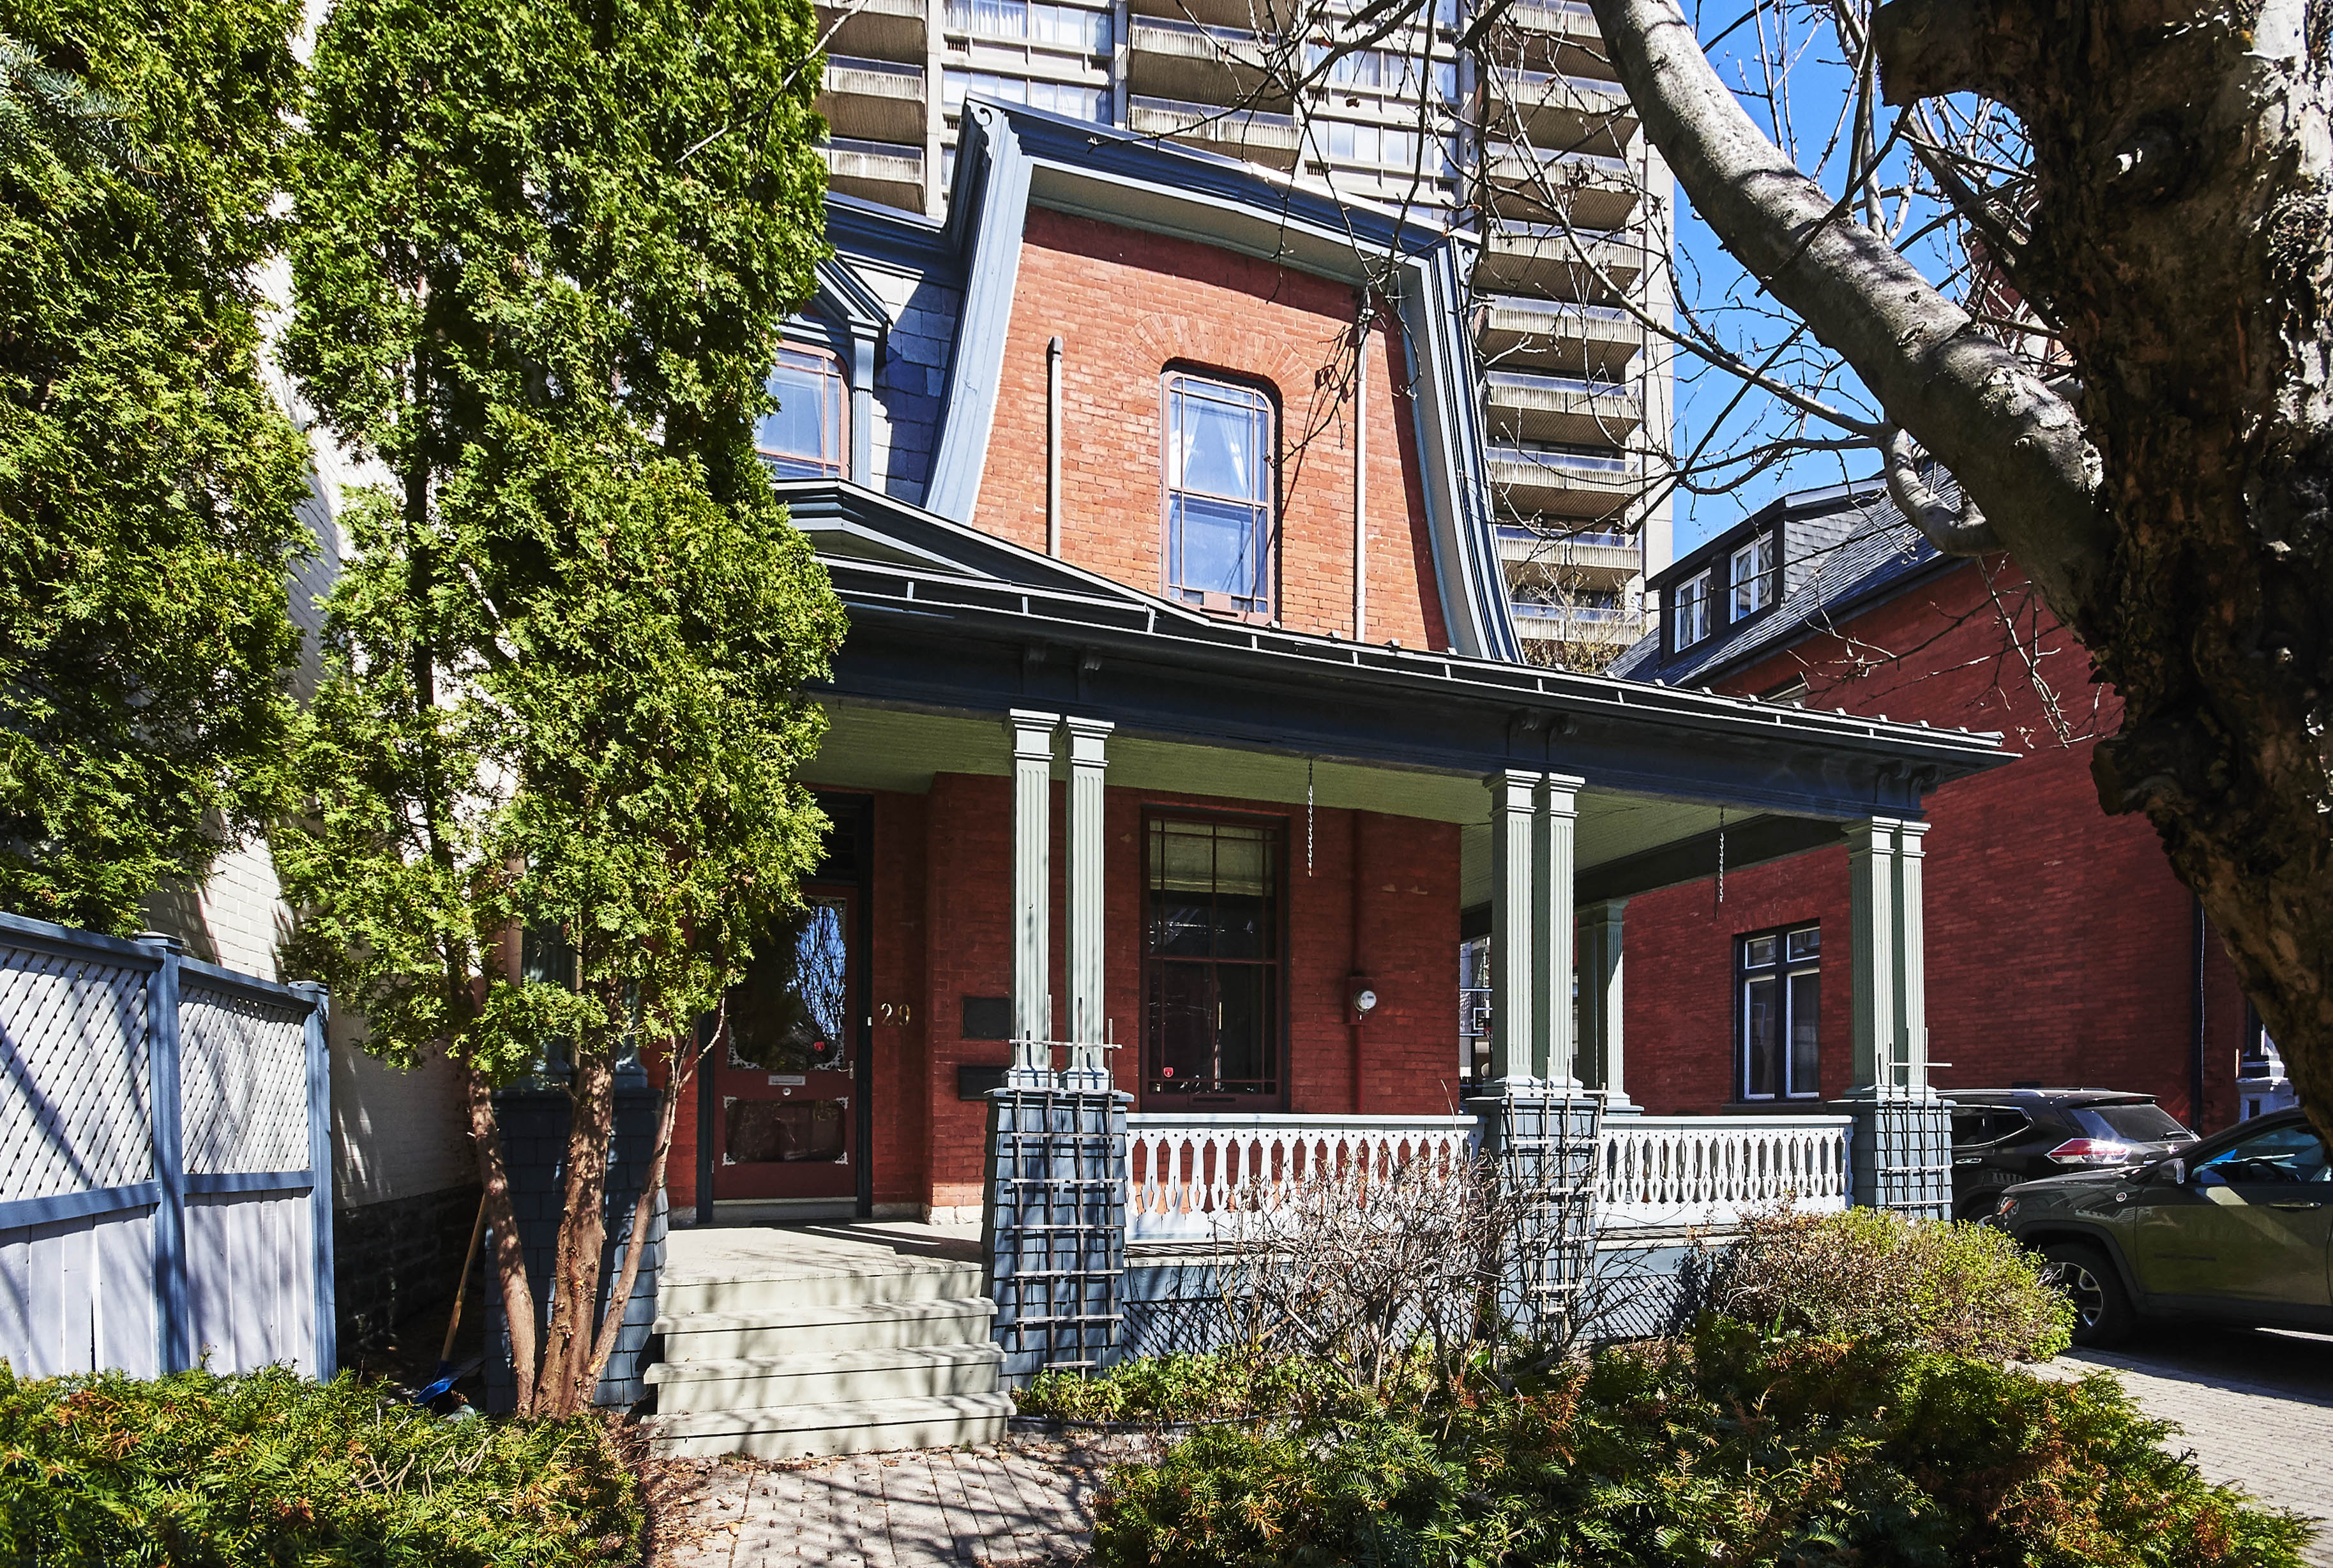 29 Somerset St W – Sold May 2018